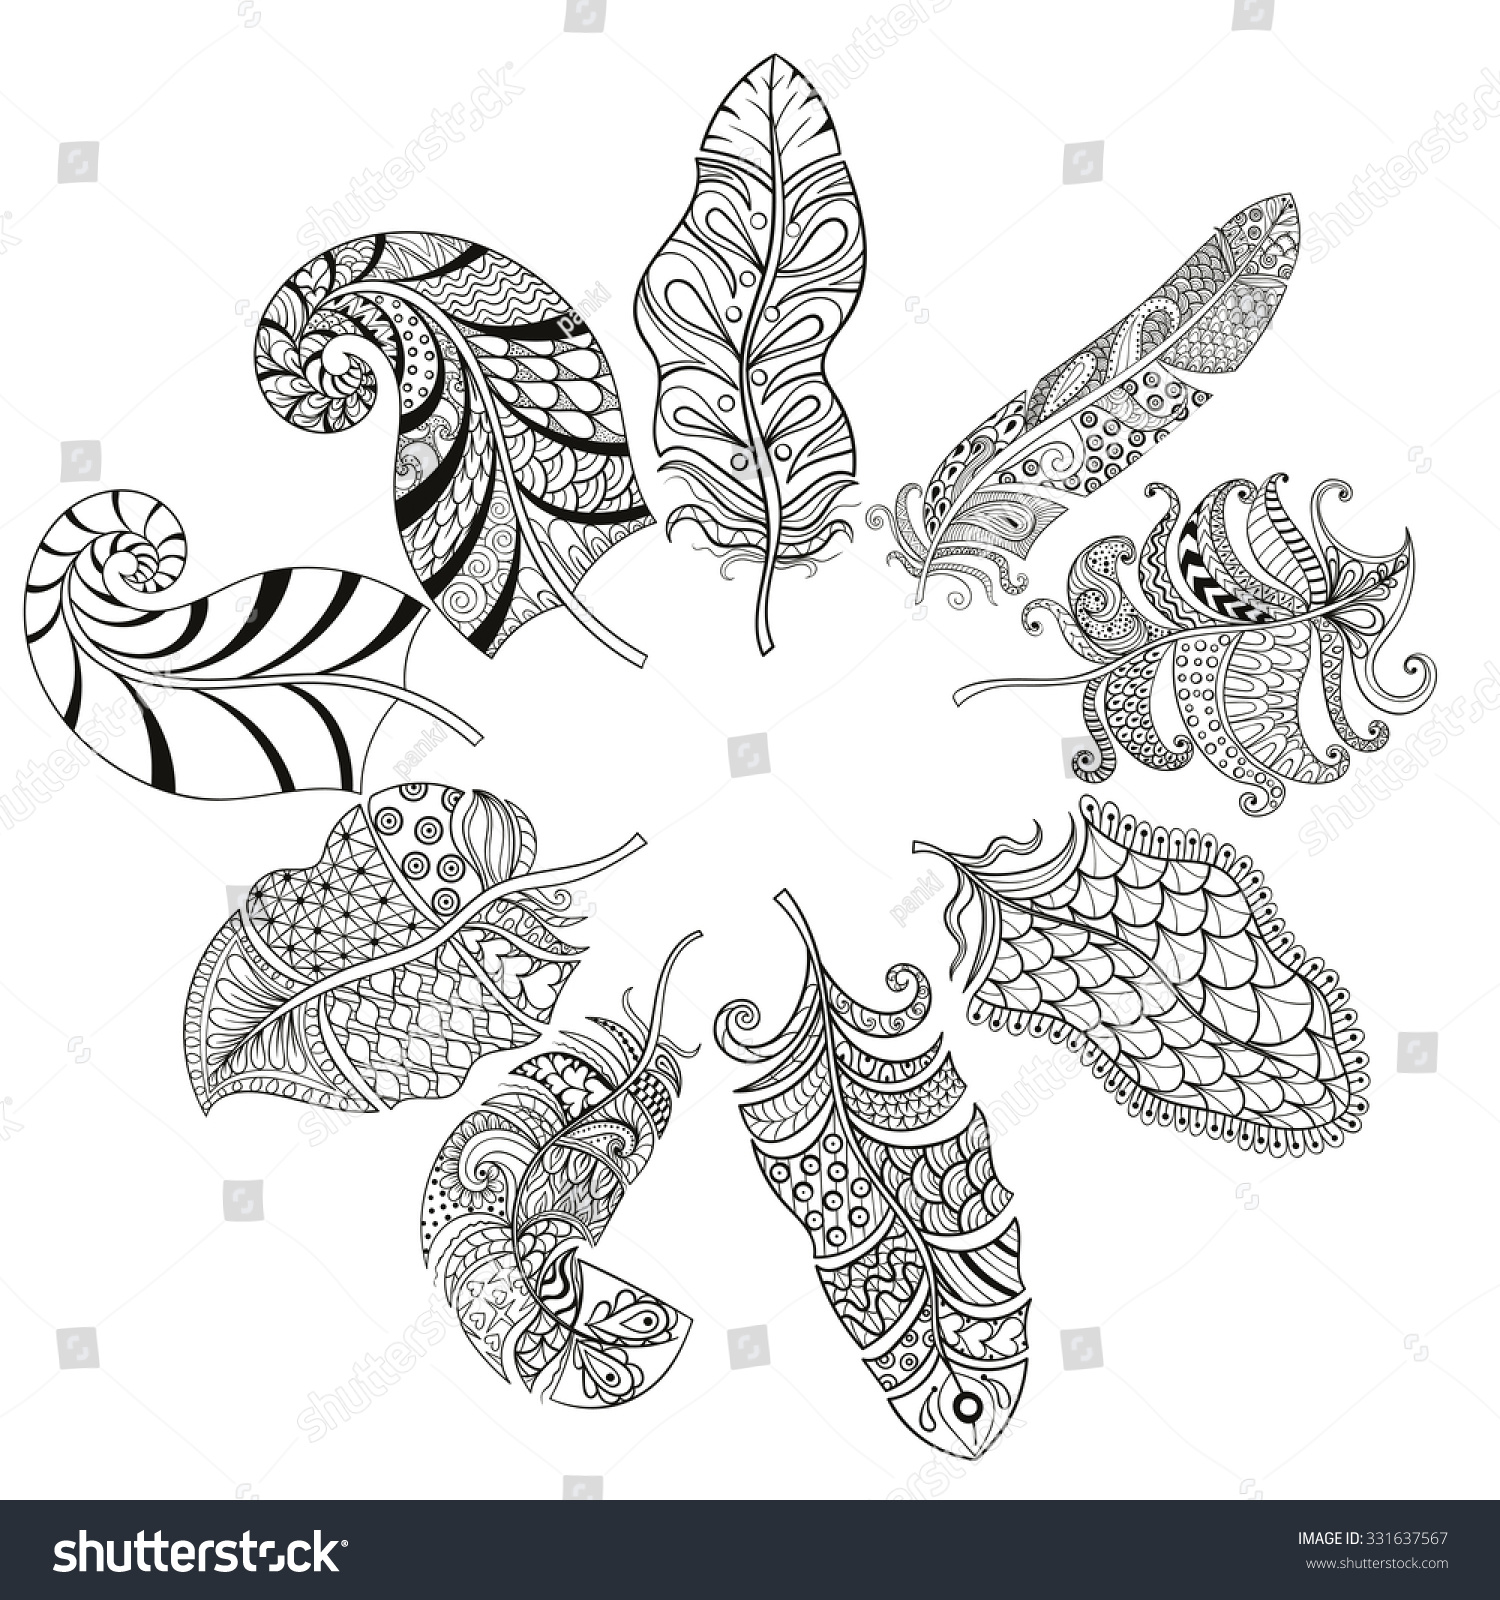 Zentangle stylized nine feathers round coloring stock for Coloring pages of feathers